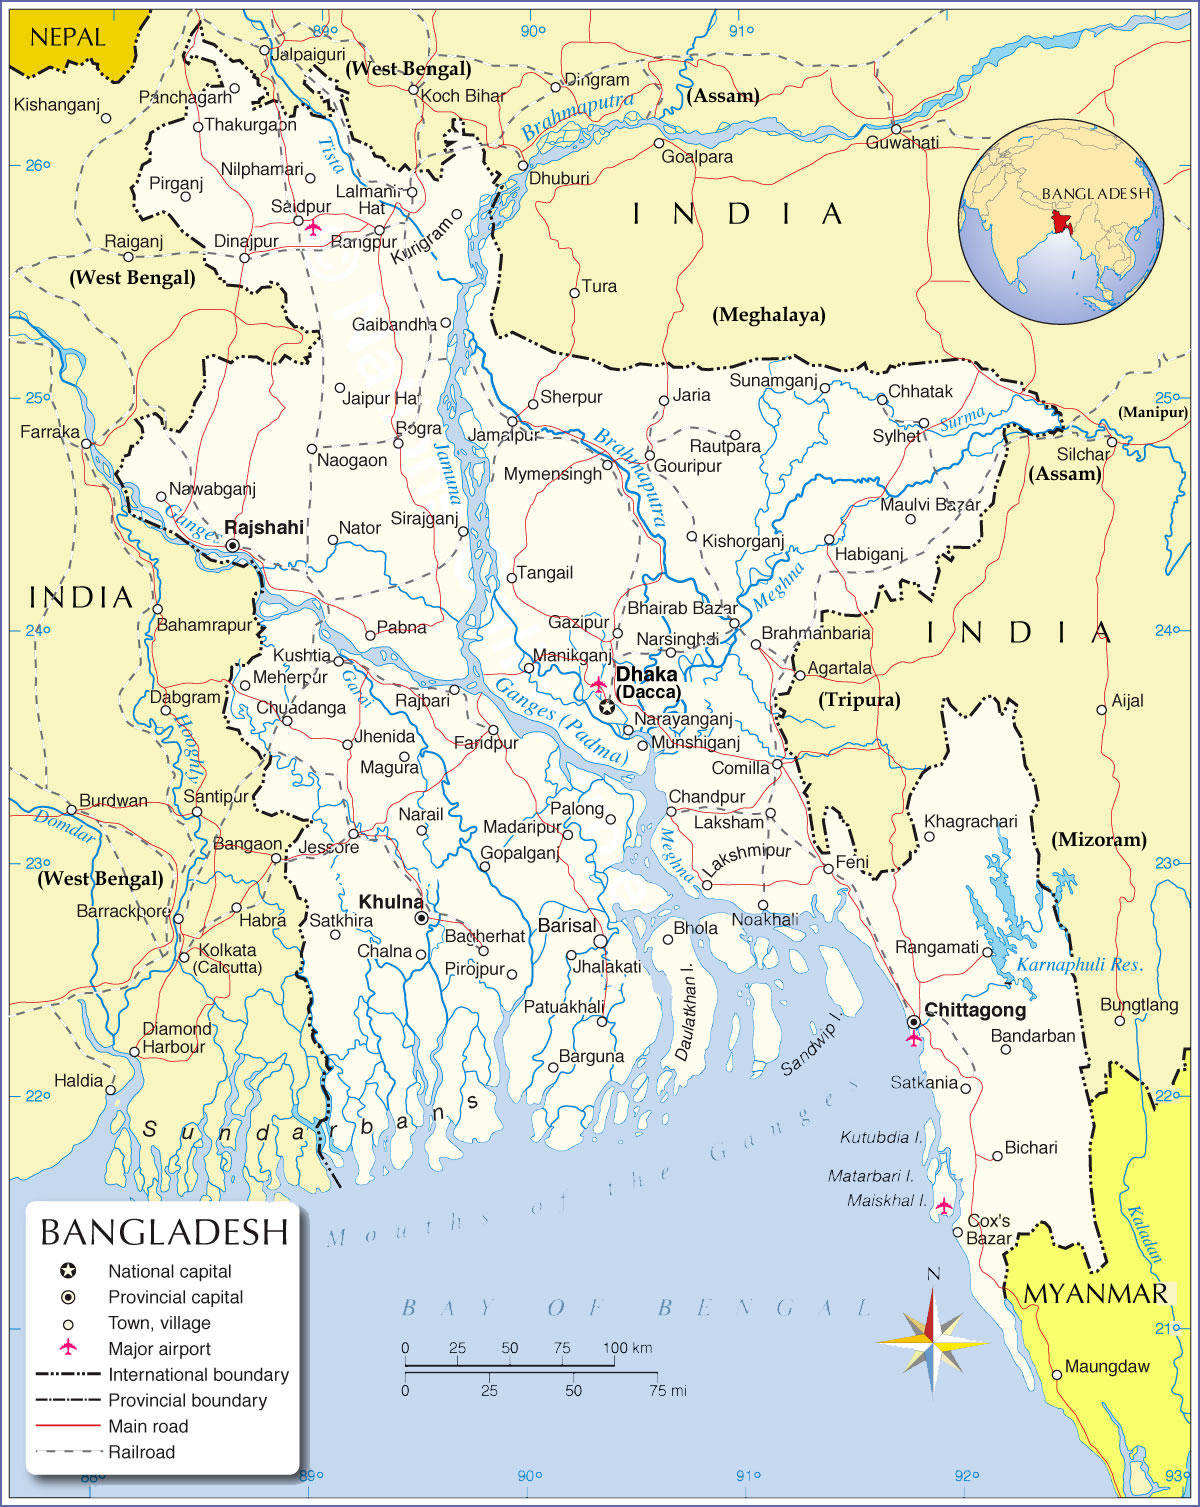 bangladesh the emergence Full-text paper (pdf): the emergence of dengue in bangladesh: epidemiology, challenges and future disease risk.